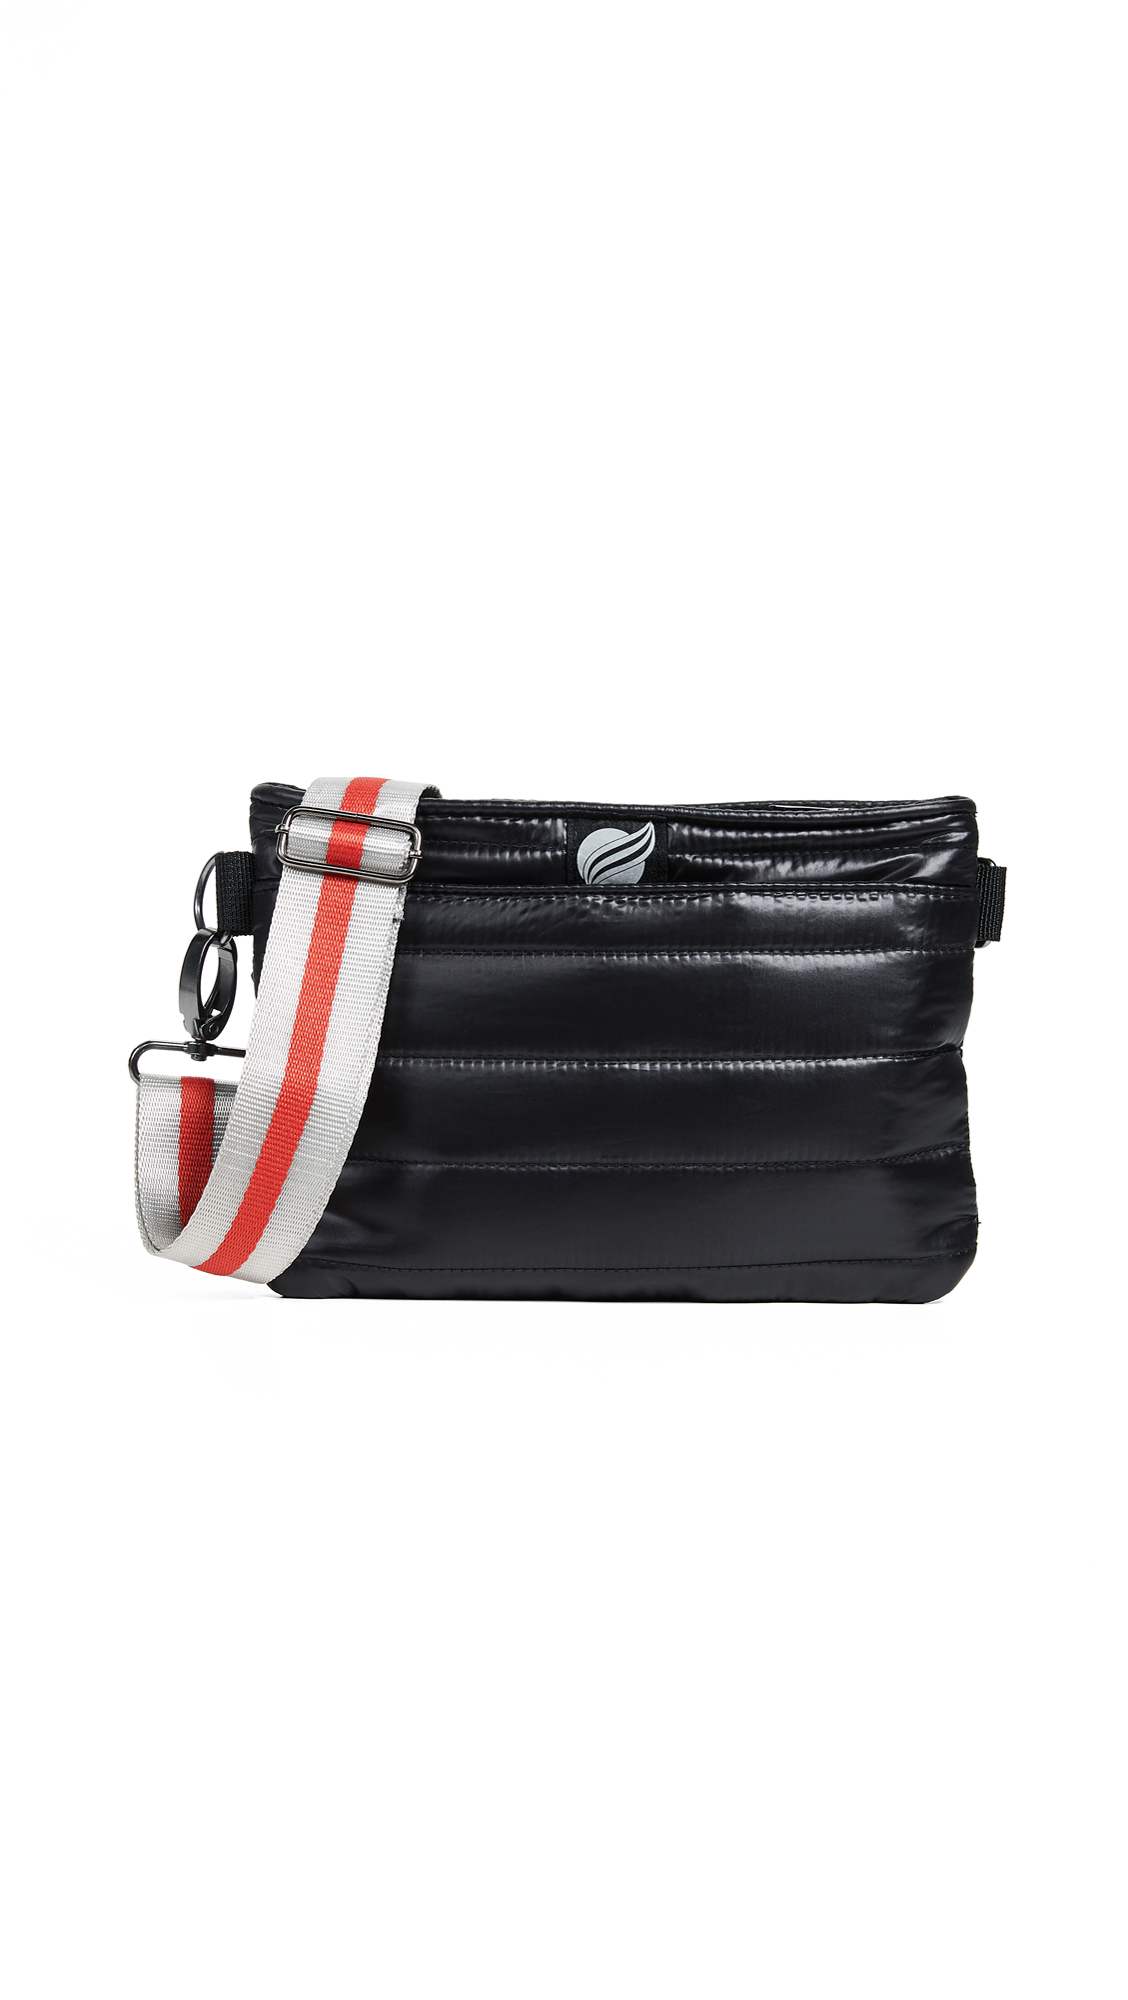 THINK ROYLN CONVERTIBLE BELT CROSS BODY BAG